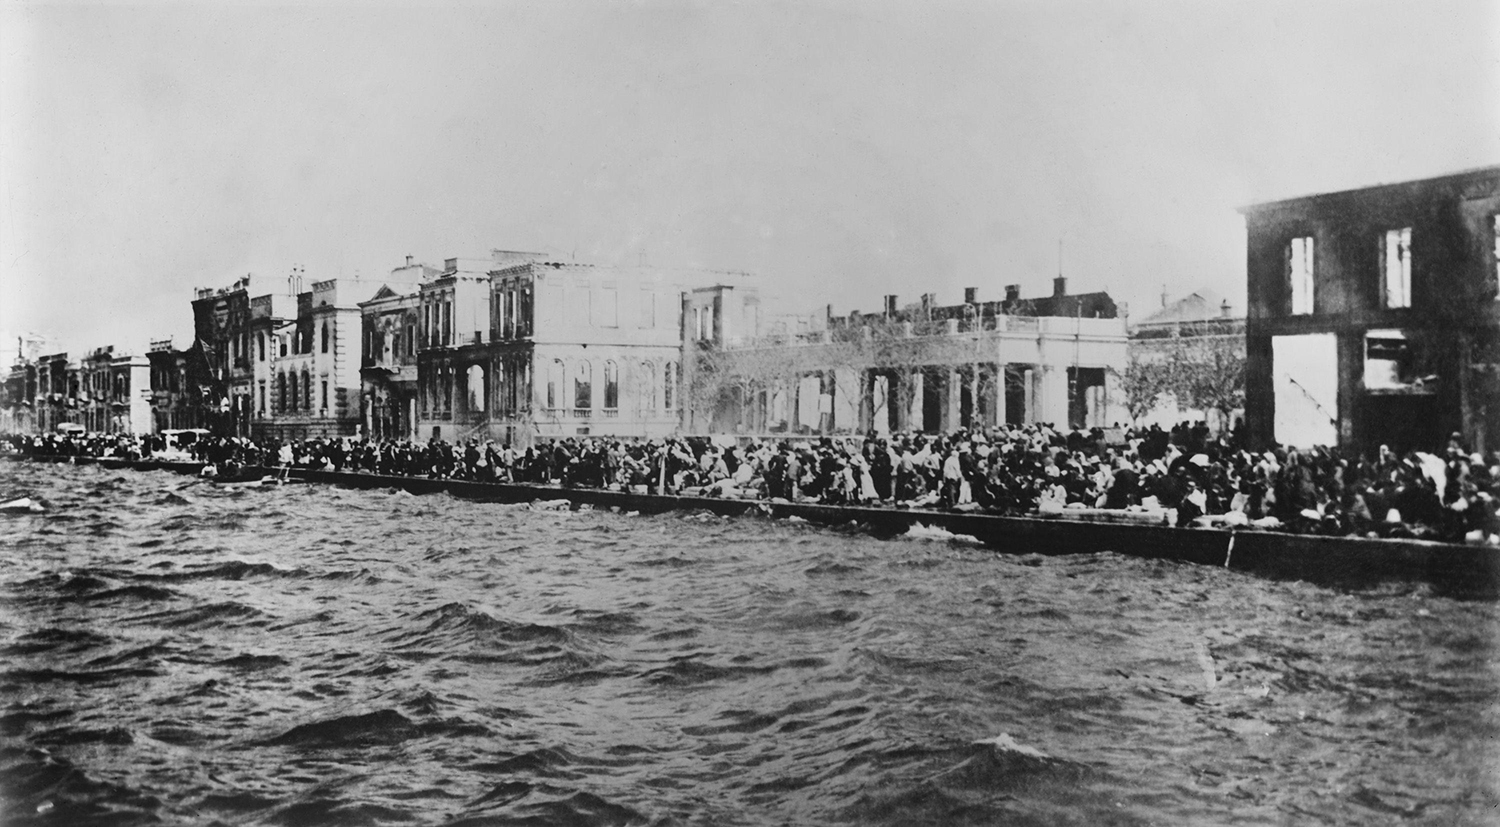 Thousands of Greek and Armenian refugees crowd onto Smyrna's waterfront to escape the fire of September 1922.